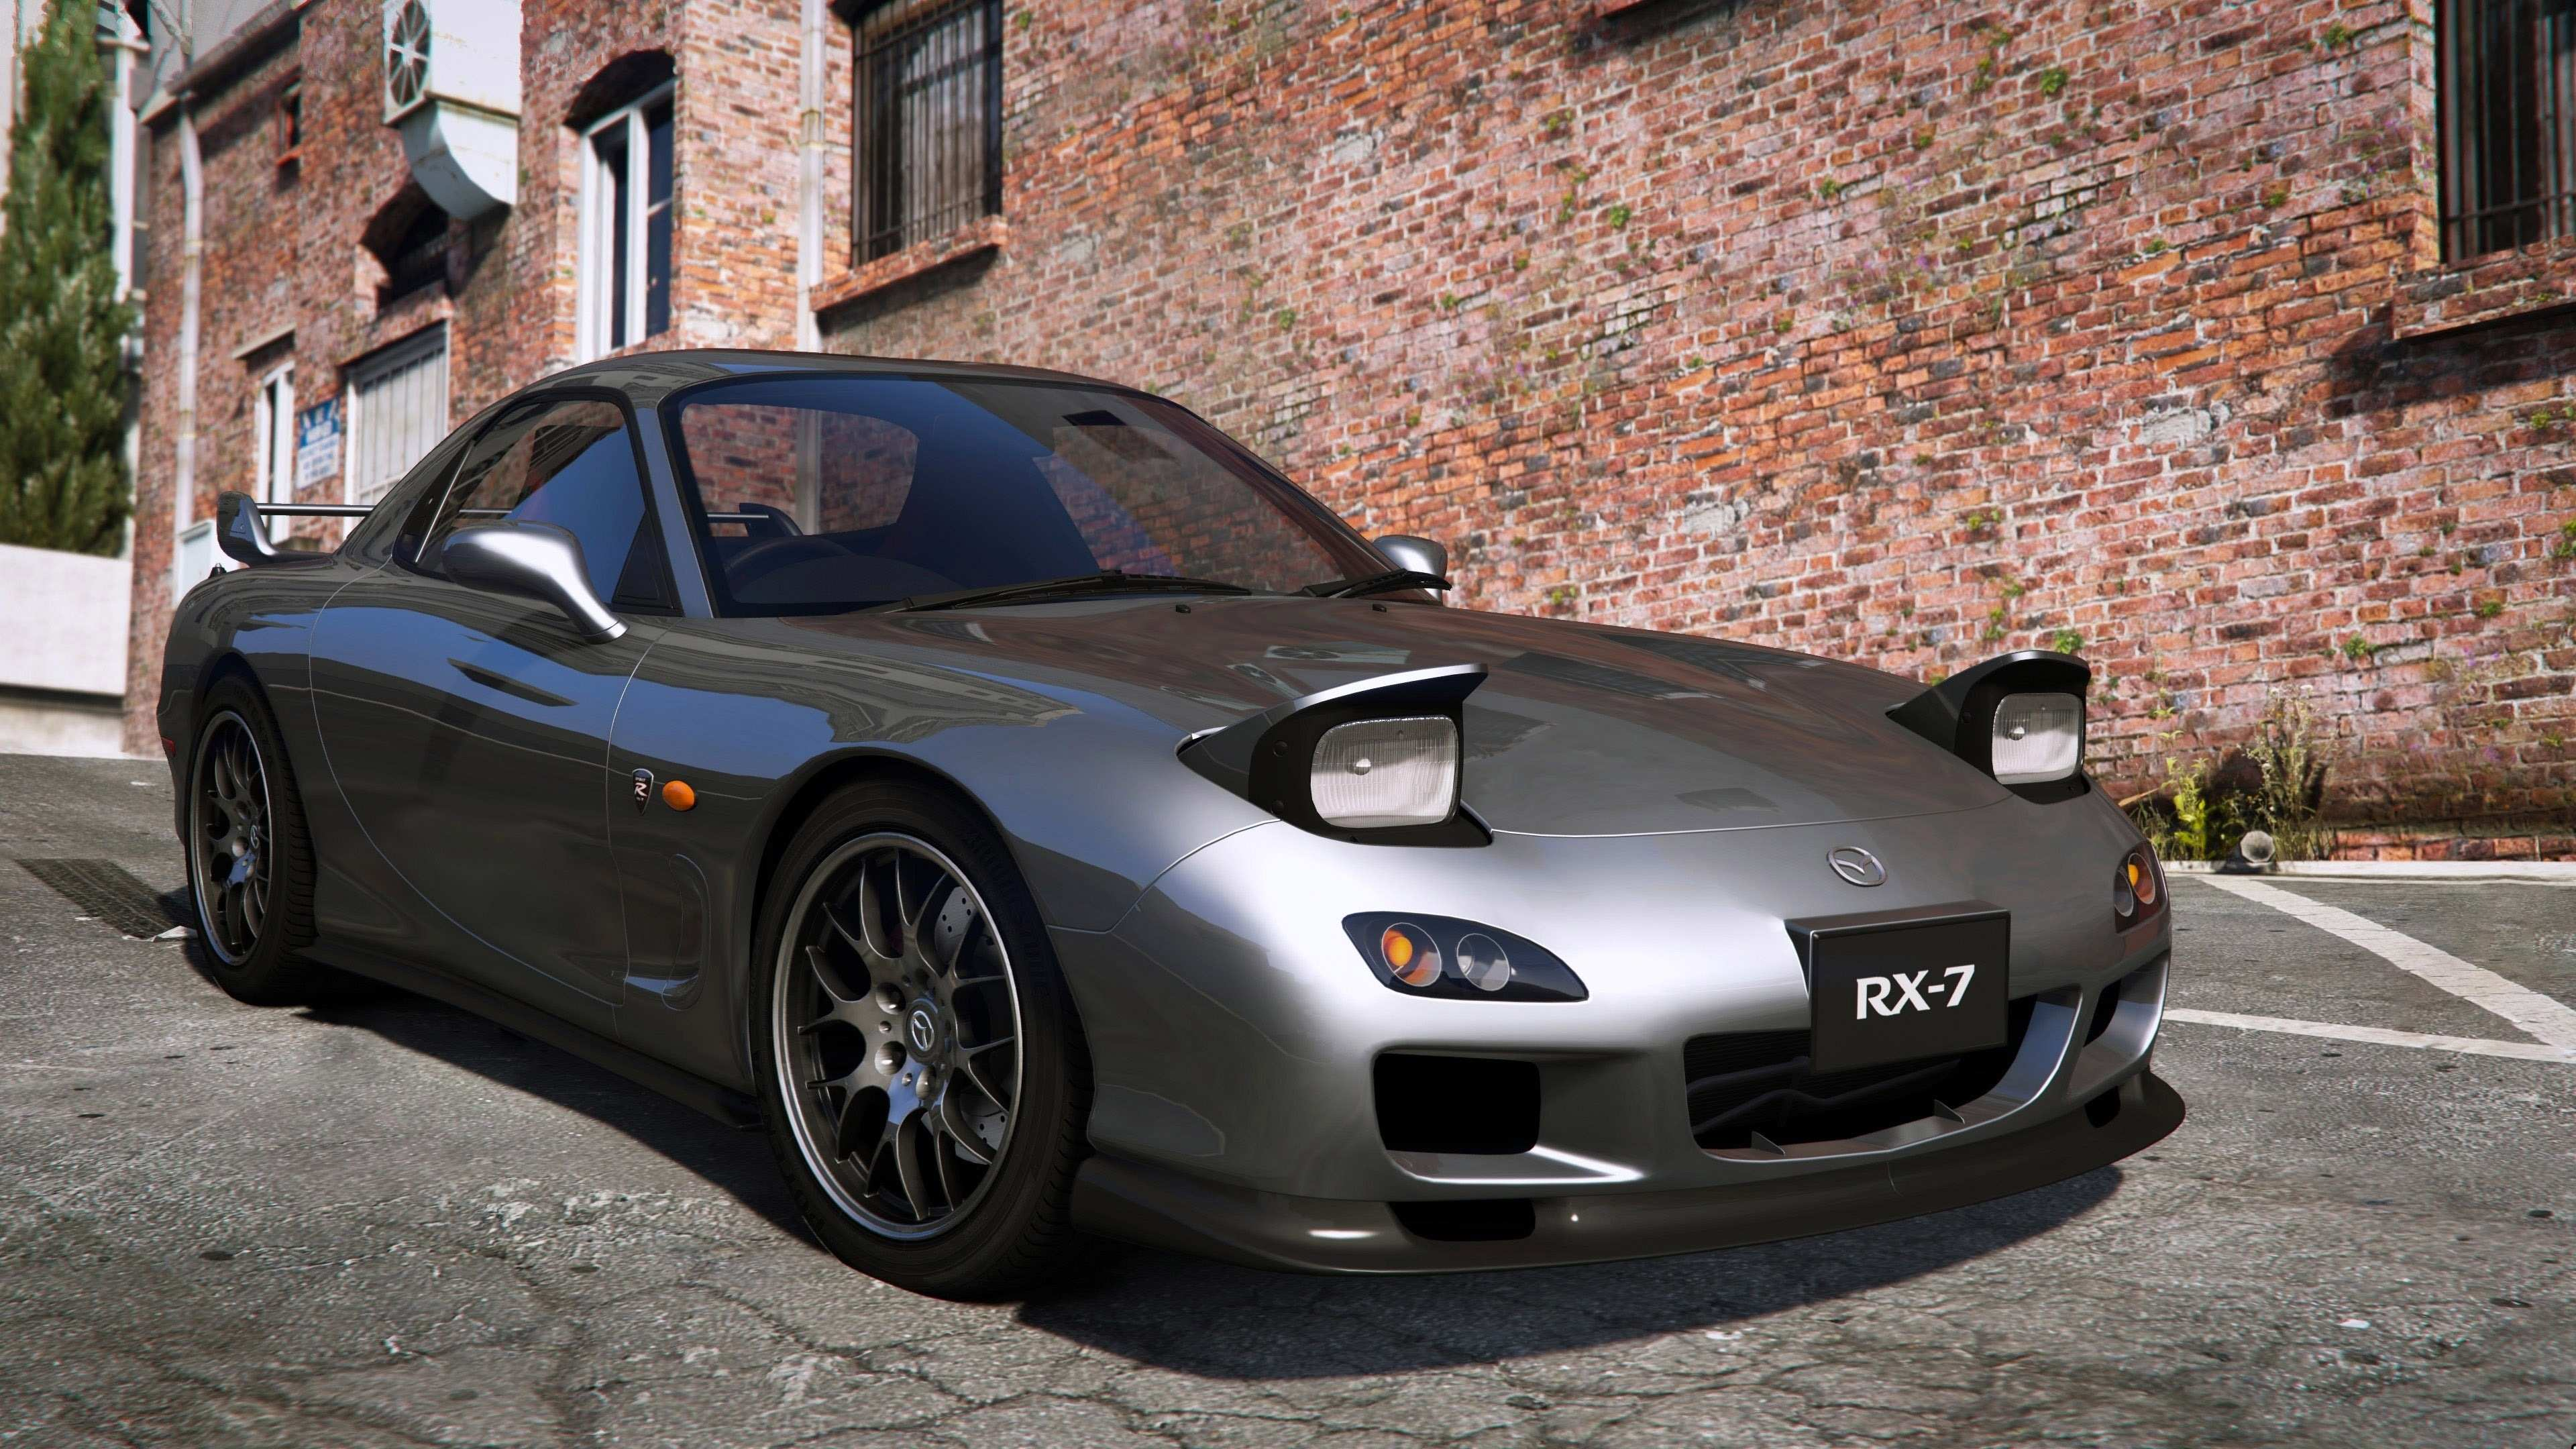 62 The Best 2020 Mazda RX7s History